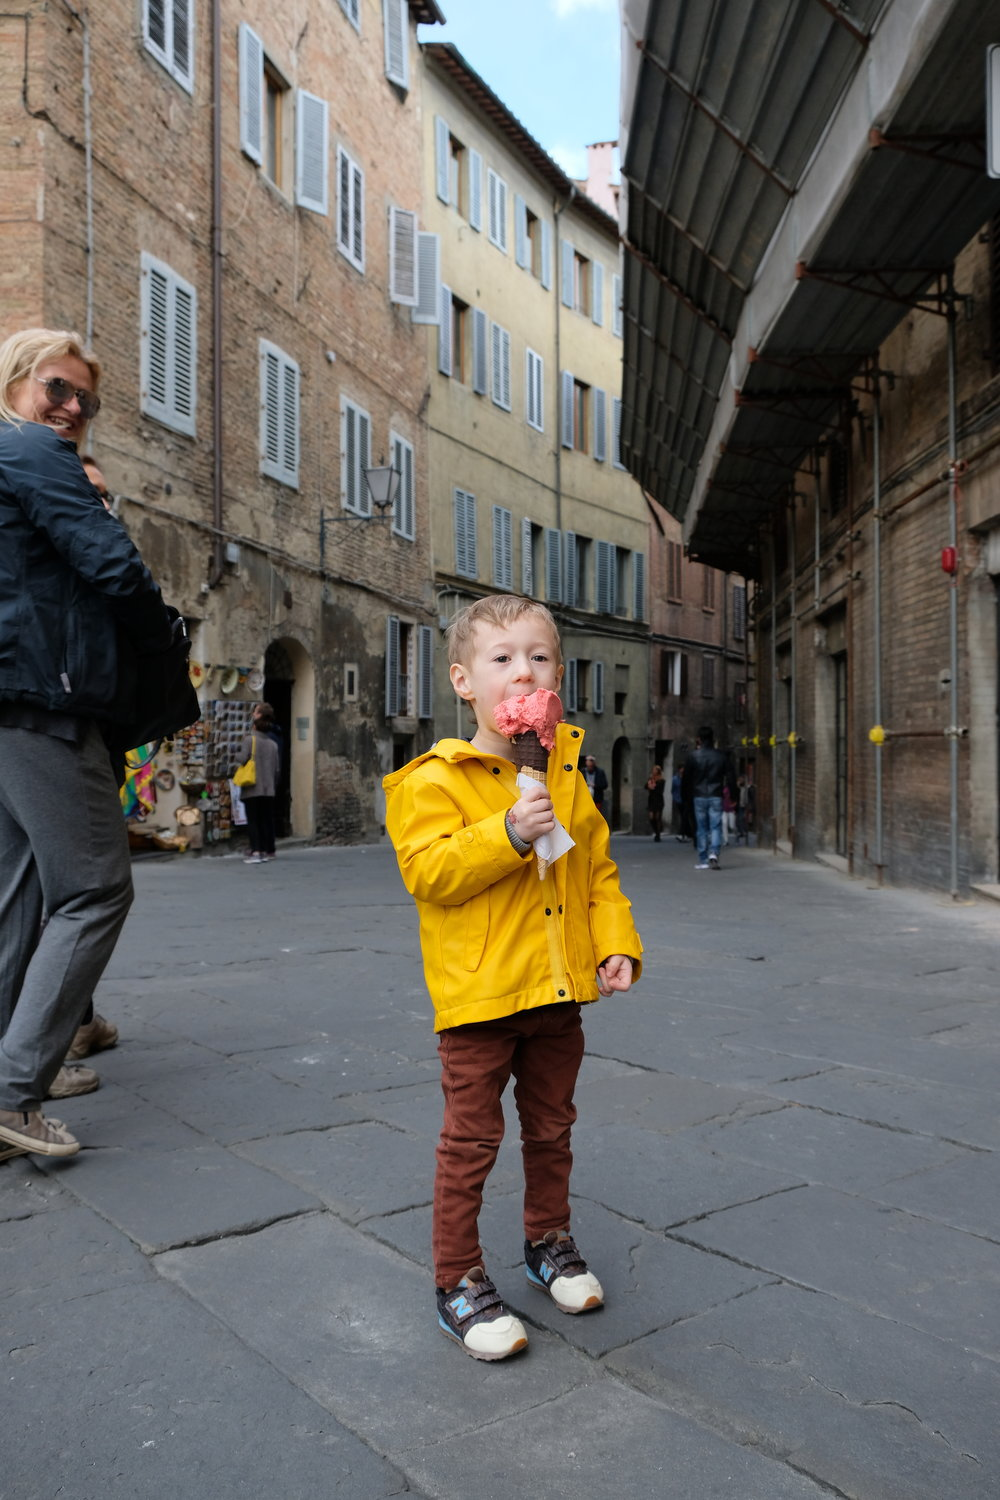 Gelato in Siena | Italy with Kids | Blog Post by Totes and the City - click for more photos and to read our experience!